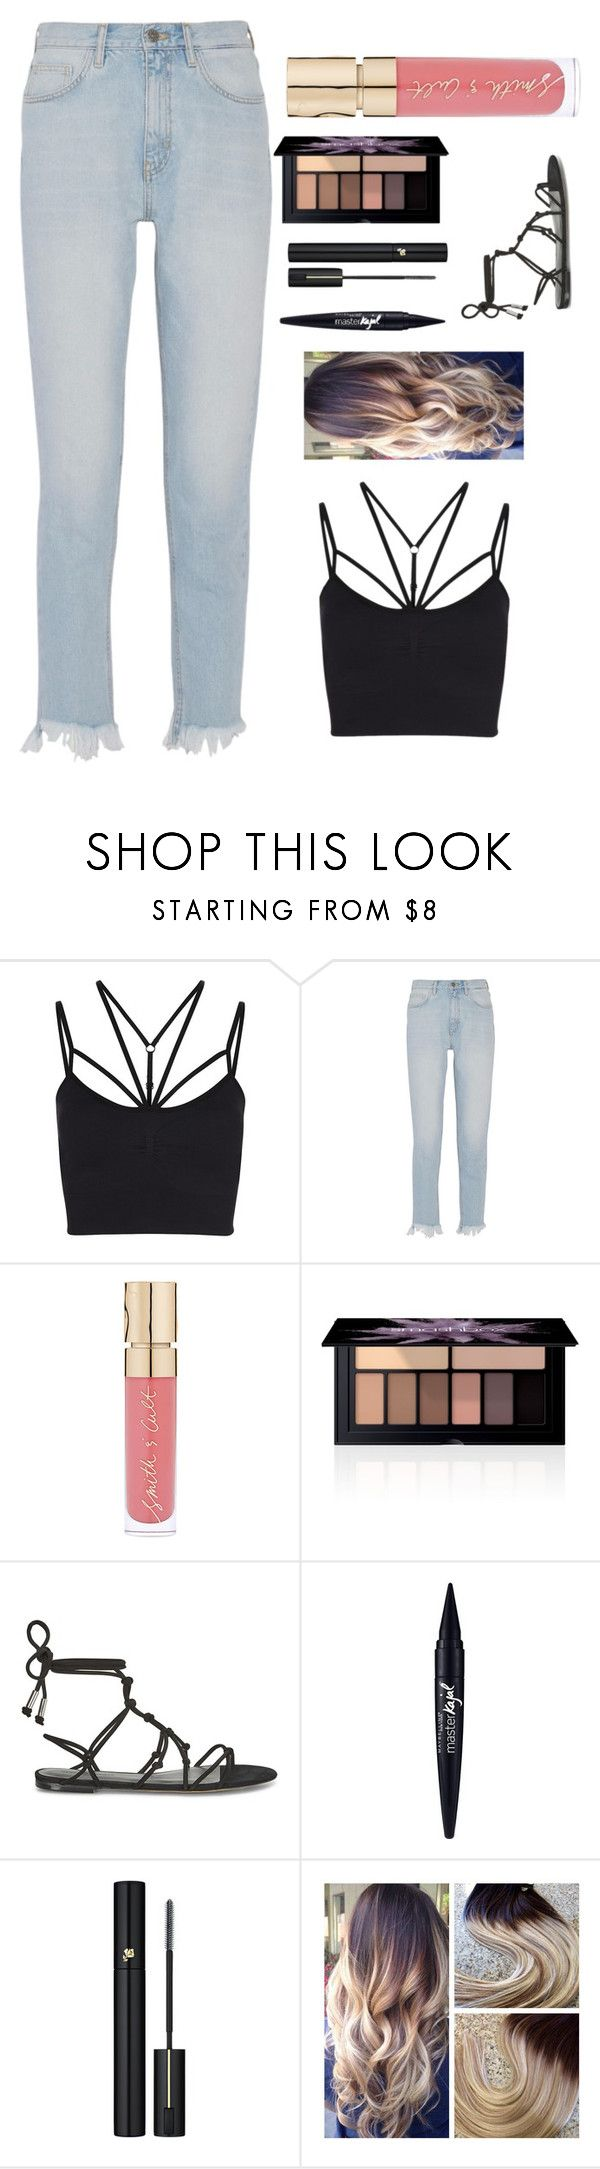 """""""Untitled #208"""" by malyaia ❤ liked on Polyvore featuring Sweaty Betty, M.i.h Jeans, Smith & Cult, Smashbox, Rebecca Minkoff, Maybelline and Lancôme"""